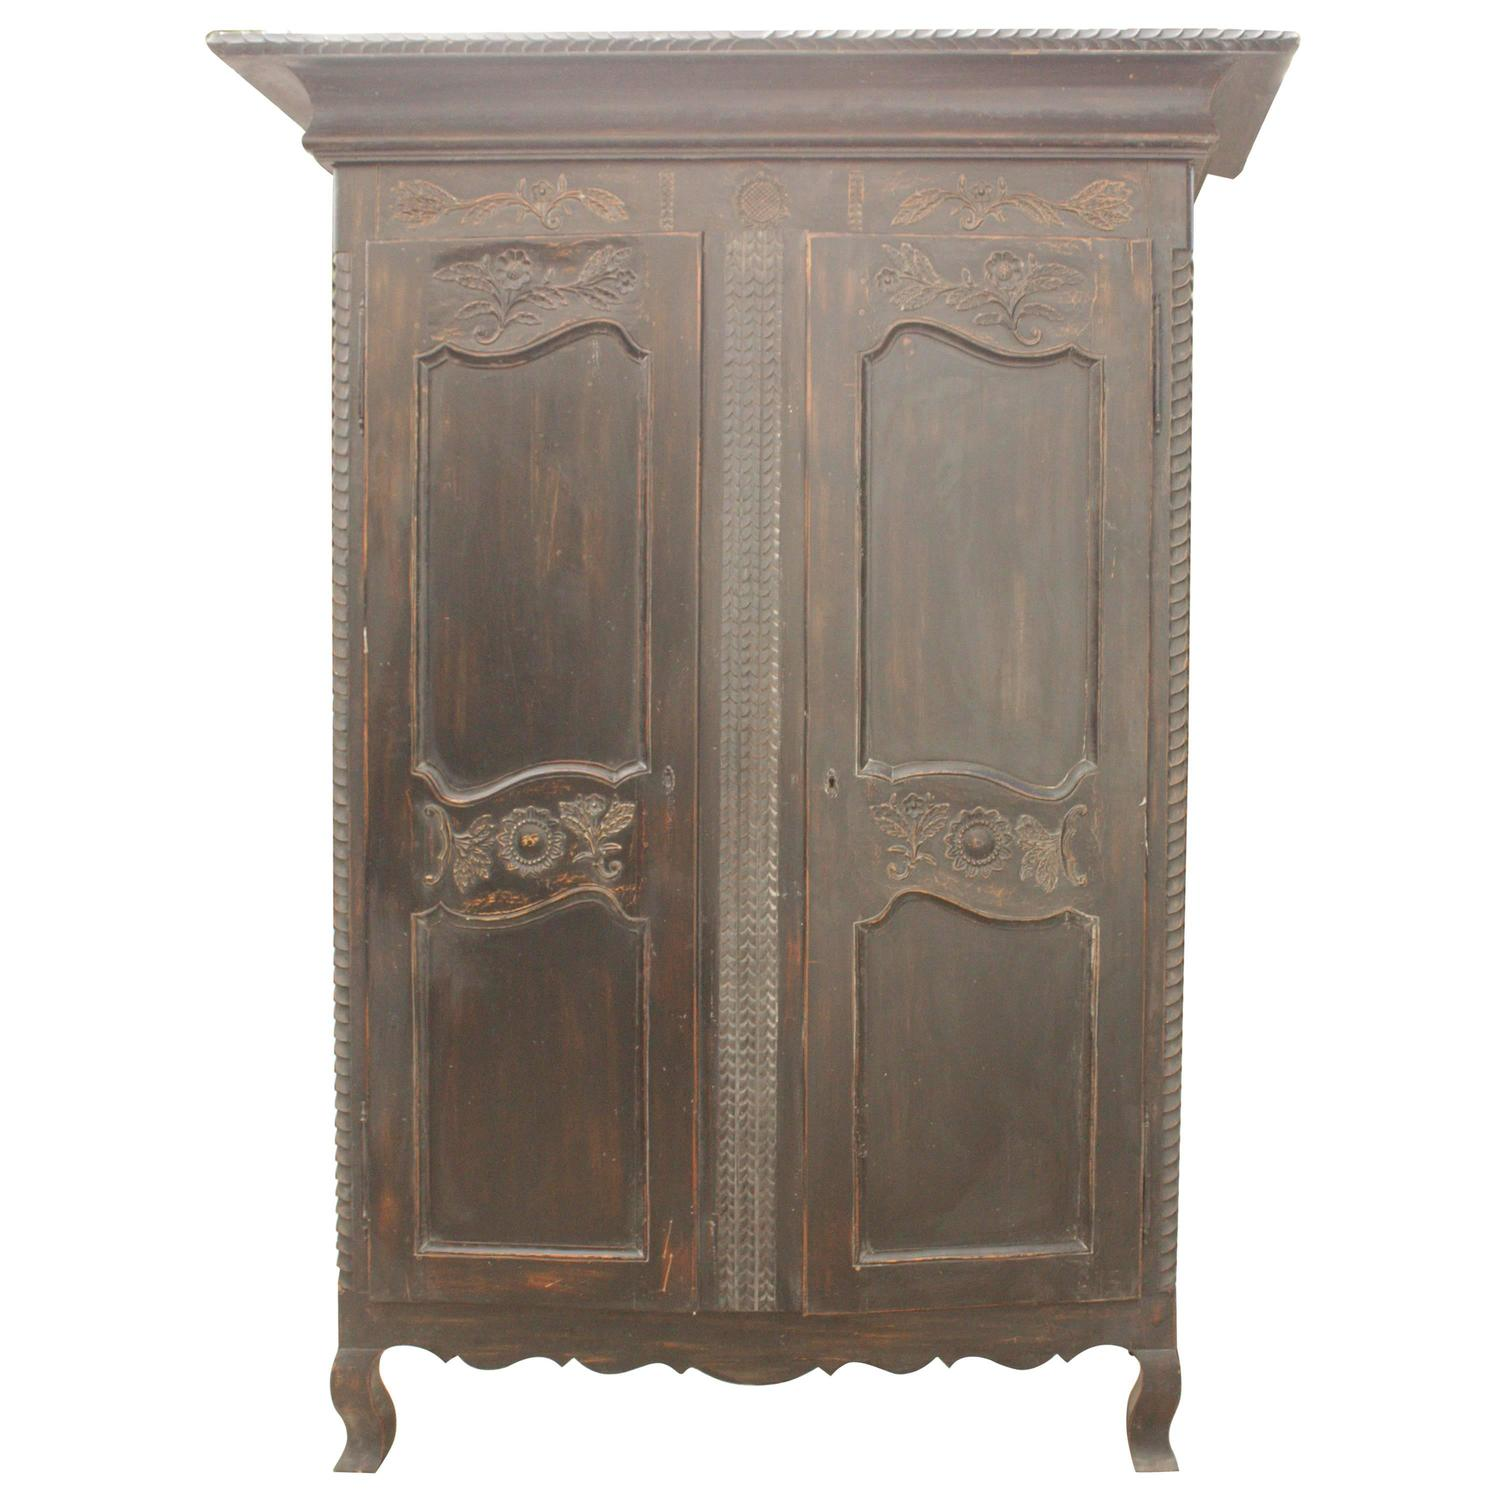 1950s French Ebonized Wood Distressed Armoire At 1stdibs. Full resolution  portrait, nominally Width 1500 Height 1500 pixels, portrait with #888844.